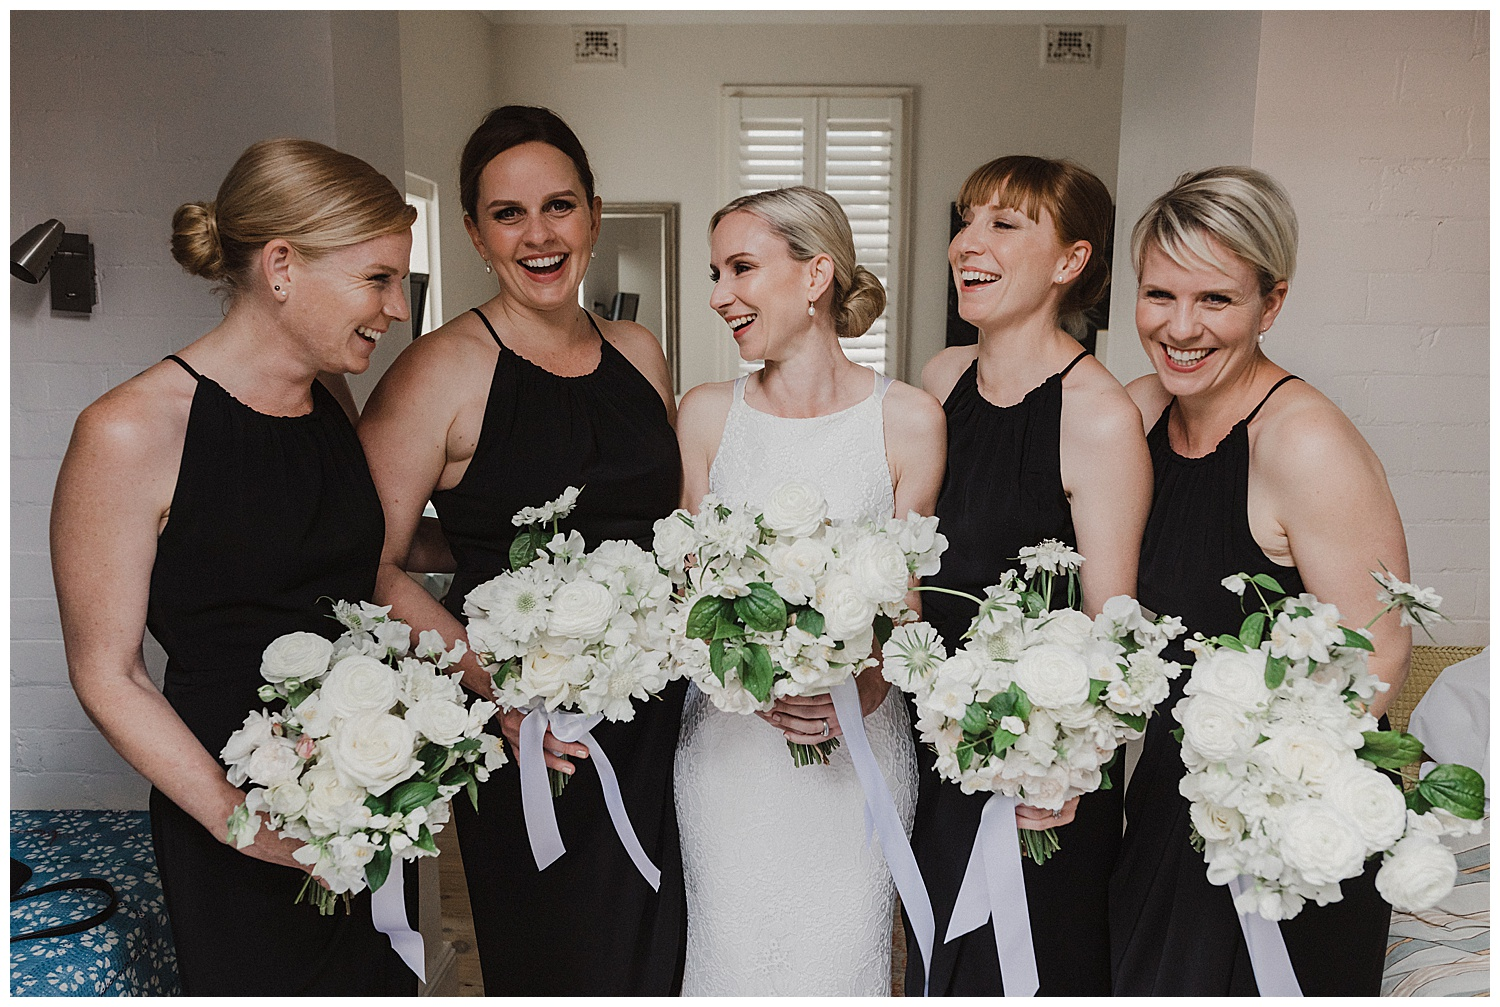 Sydney Bride share a laugh with her bridesmaids